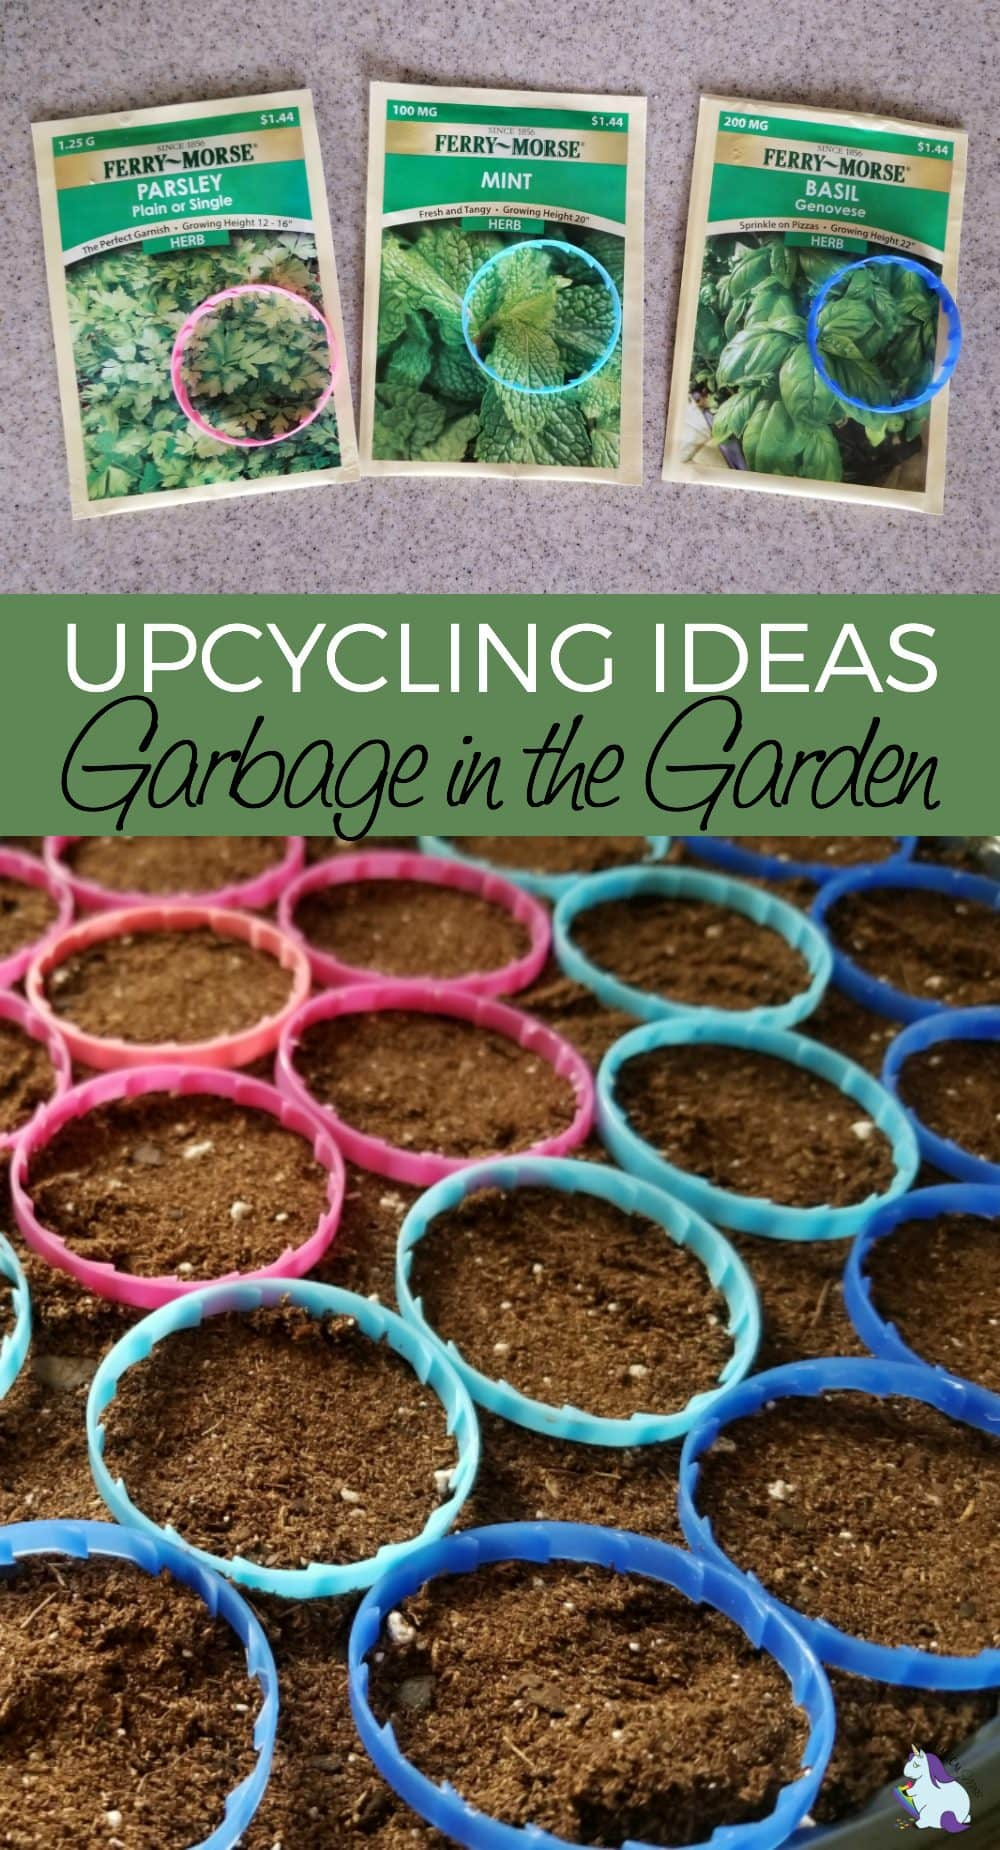 Upcycling Ideas – Garbage in the Garden - milk jug rings as seed markers